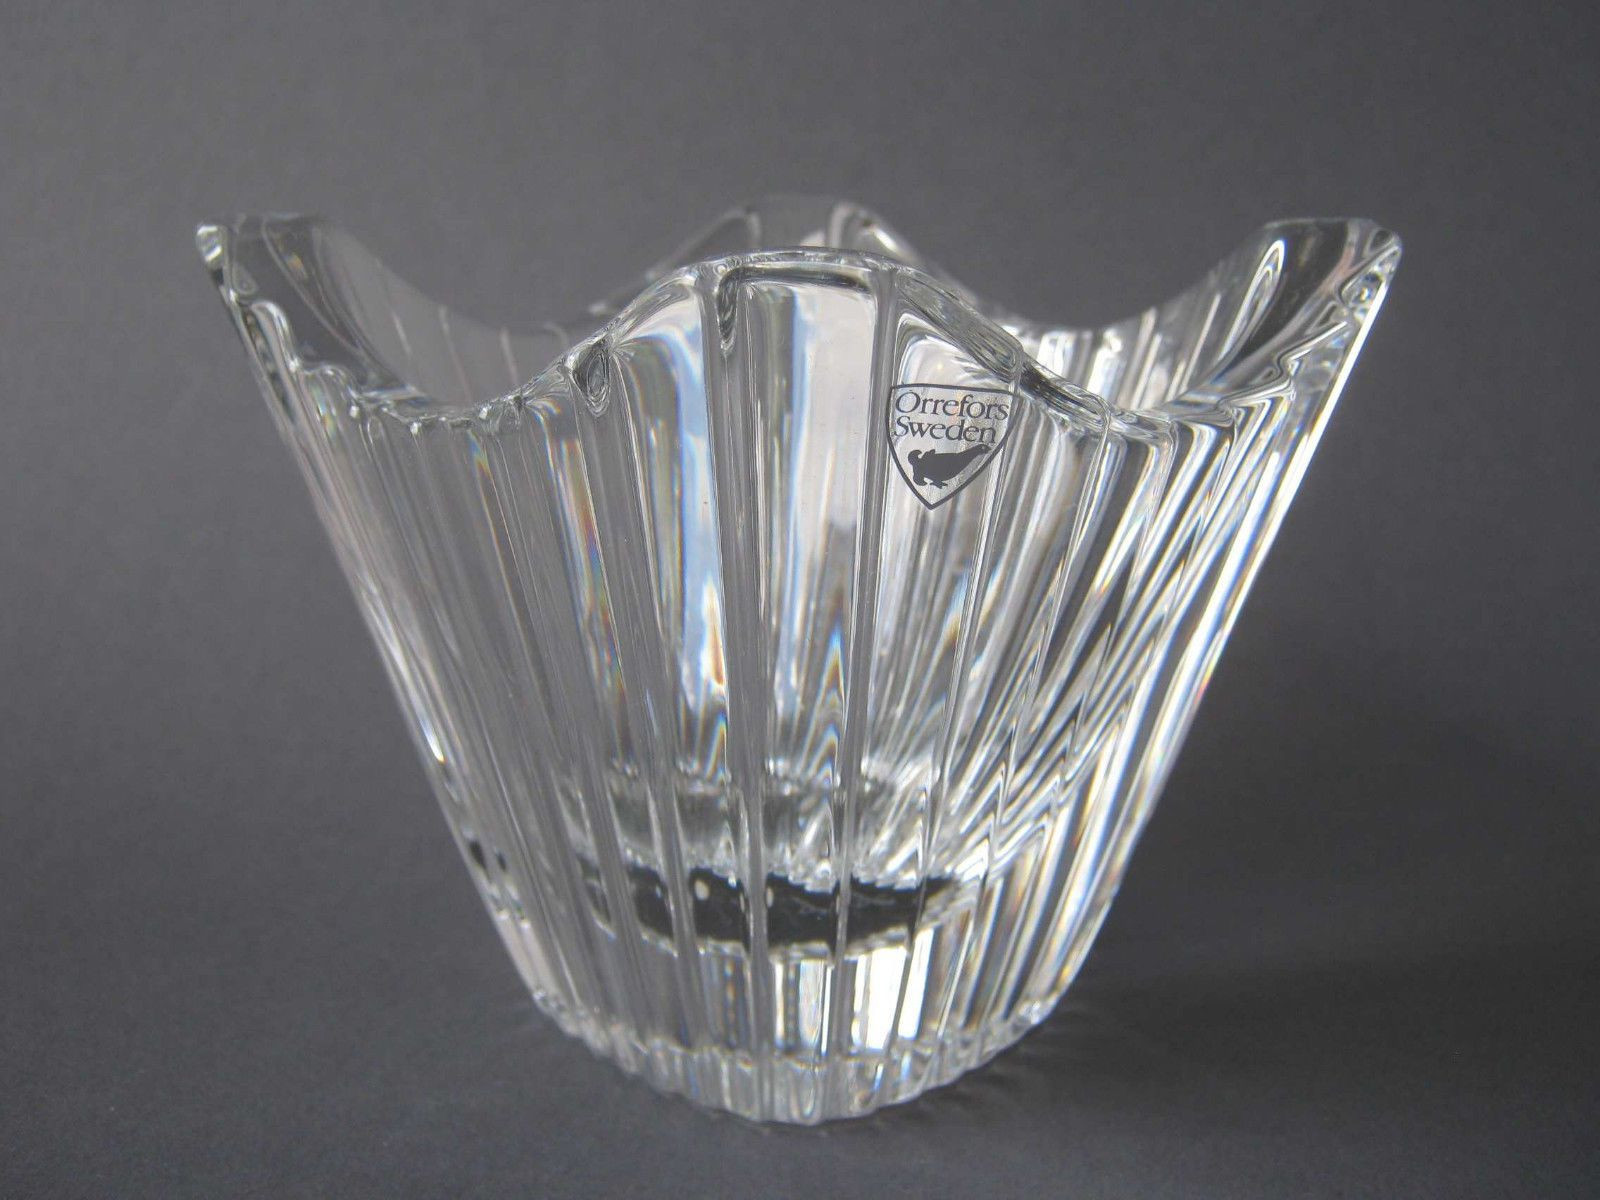 17 Best Scandinavian Glass Vase 2021 free download scandinavian glass vase of 49 orrefors sweden vase the weekly world regarding glas vase schale orrefors sweden signiert original label glass